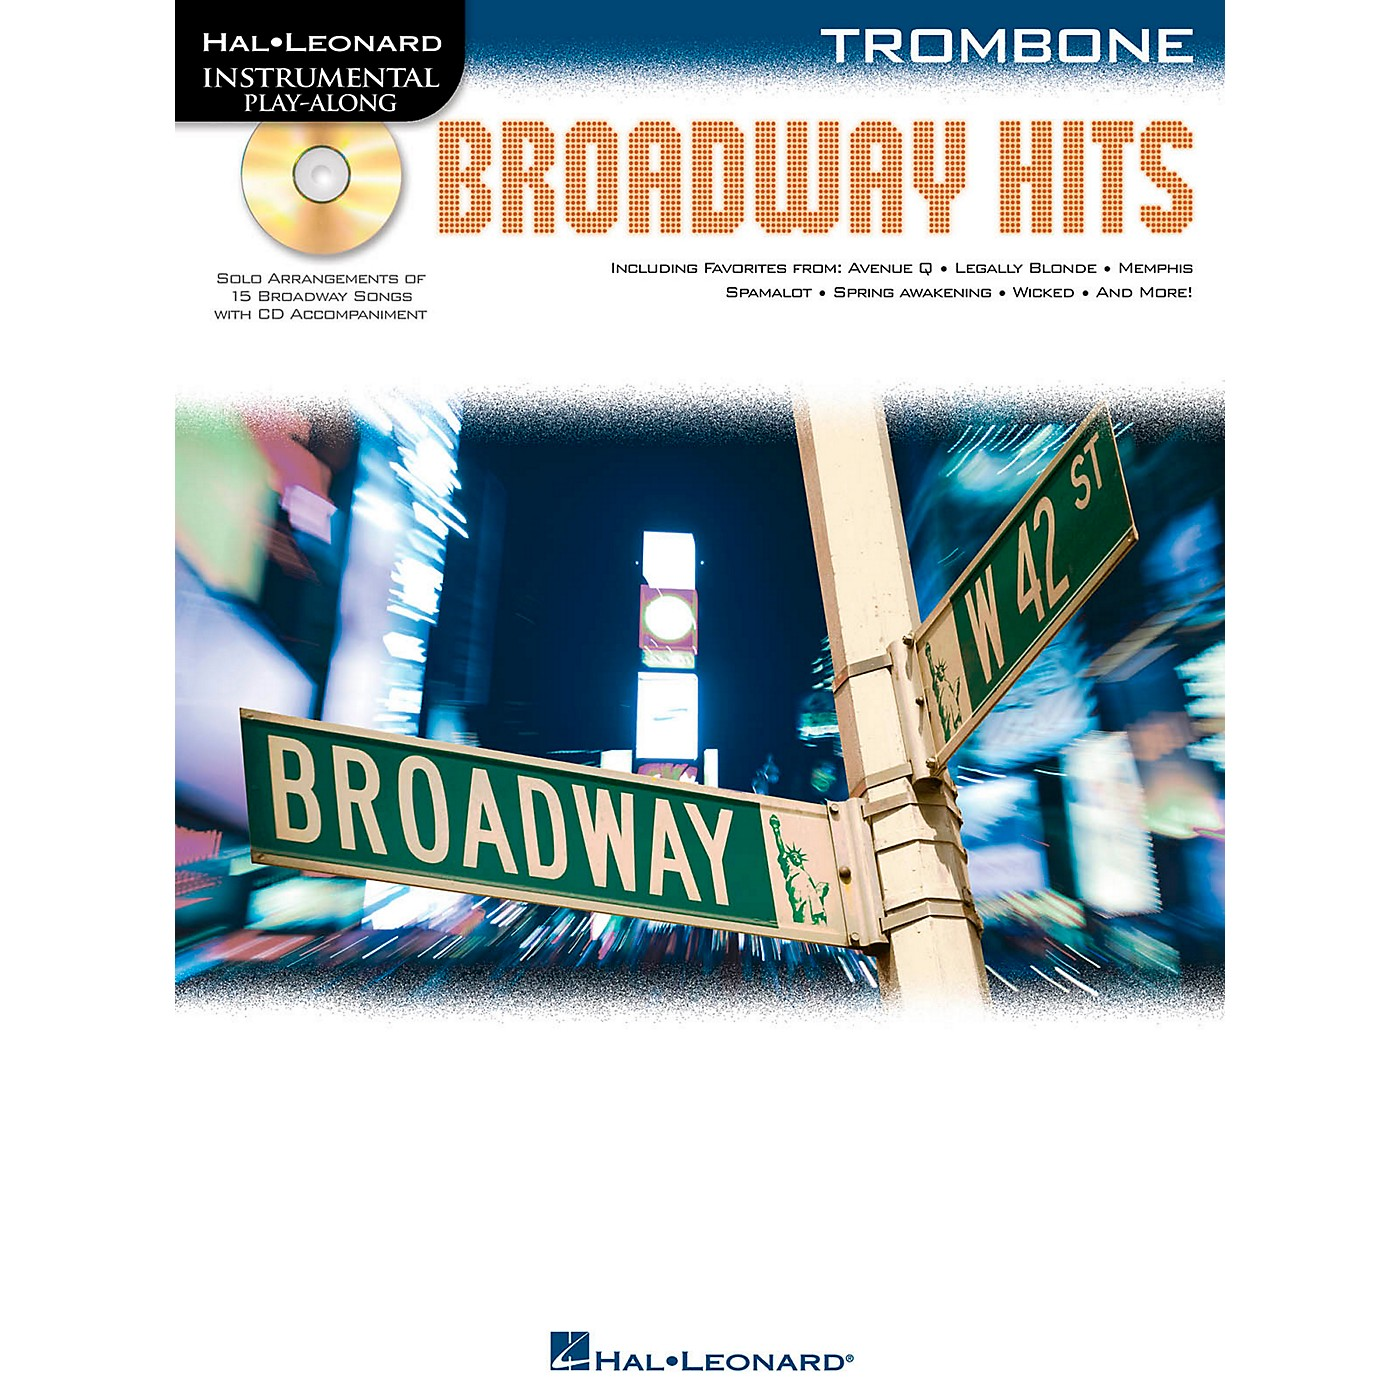 Hal Leonard Broadway Hits For Trombone - Instrumental Play-Along Book/CD thumbnail